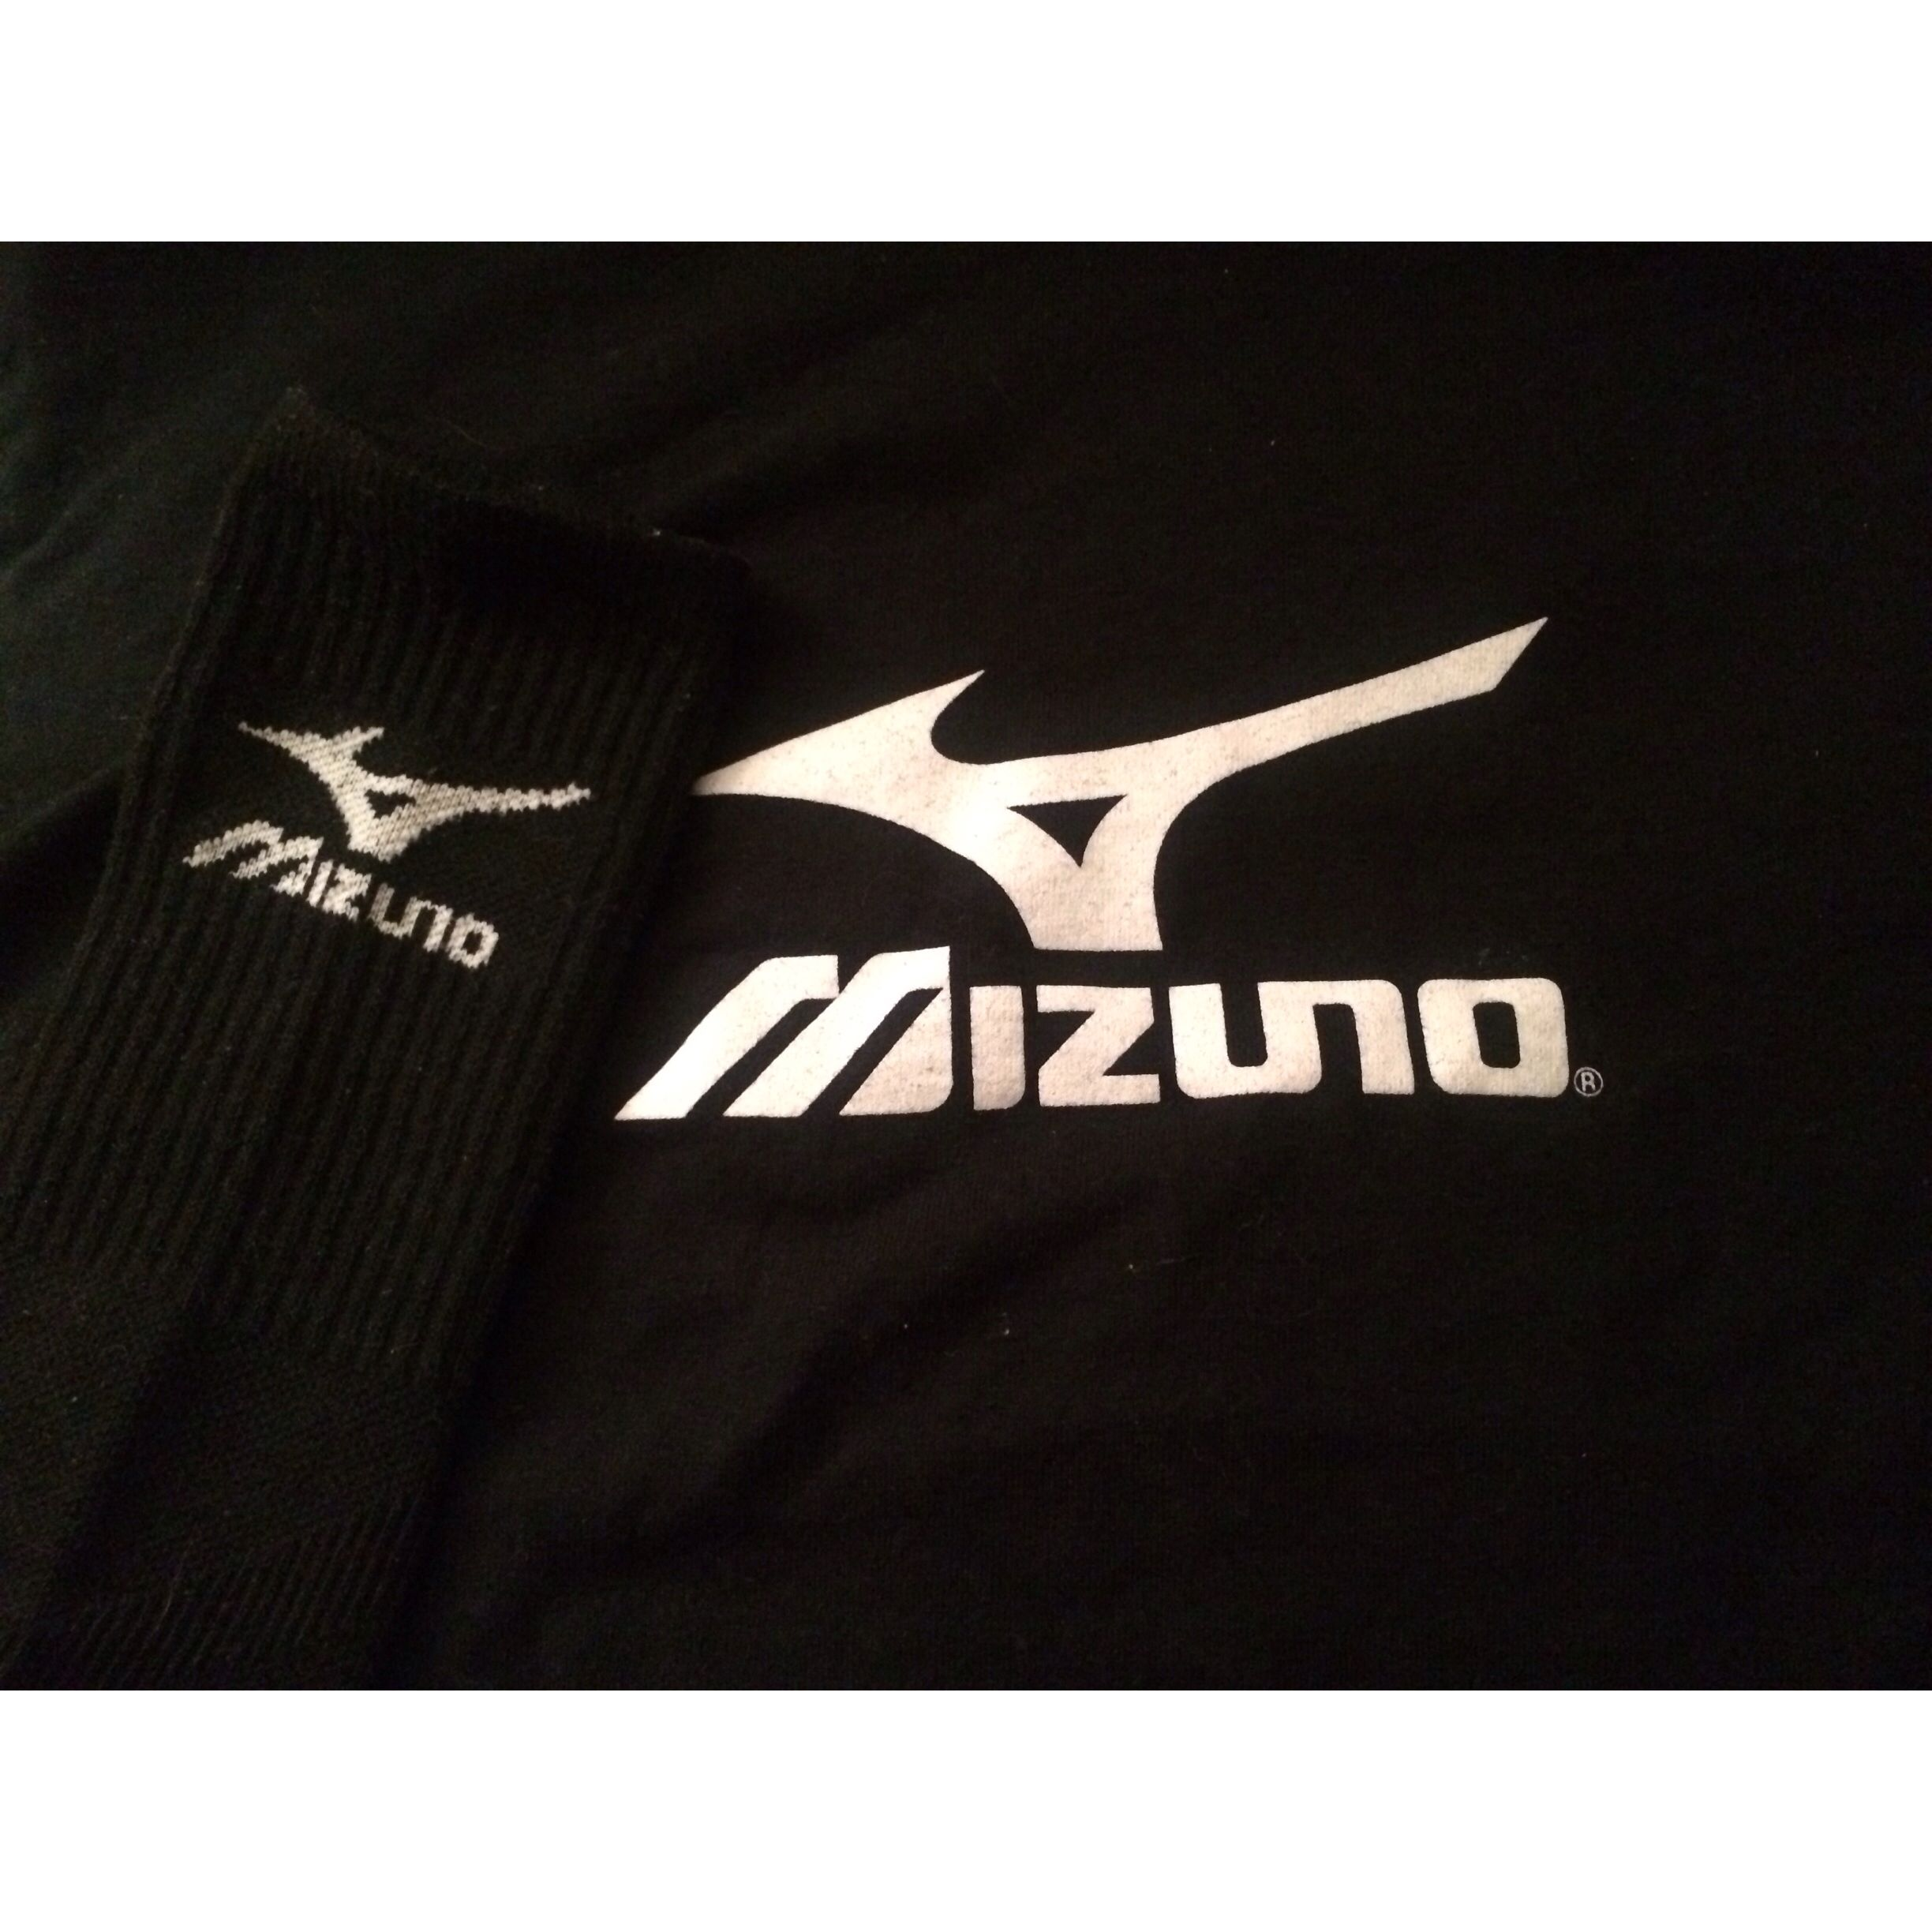 6 Get A Picture Of The Logo The Mizuno Logo On My Socks And Shirt Pinittowinit Usavolleyball